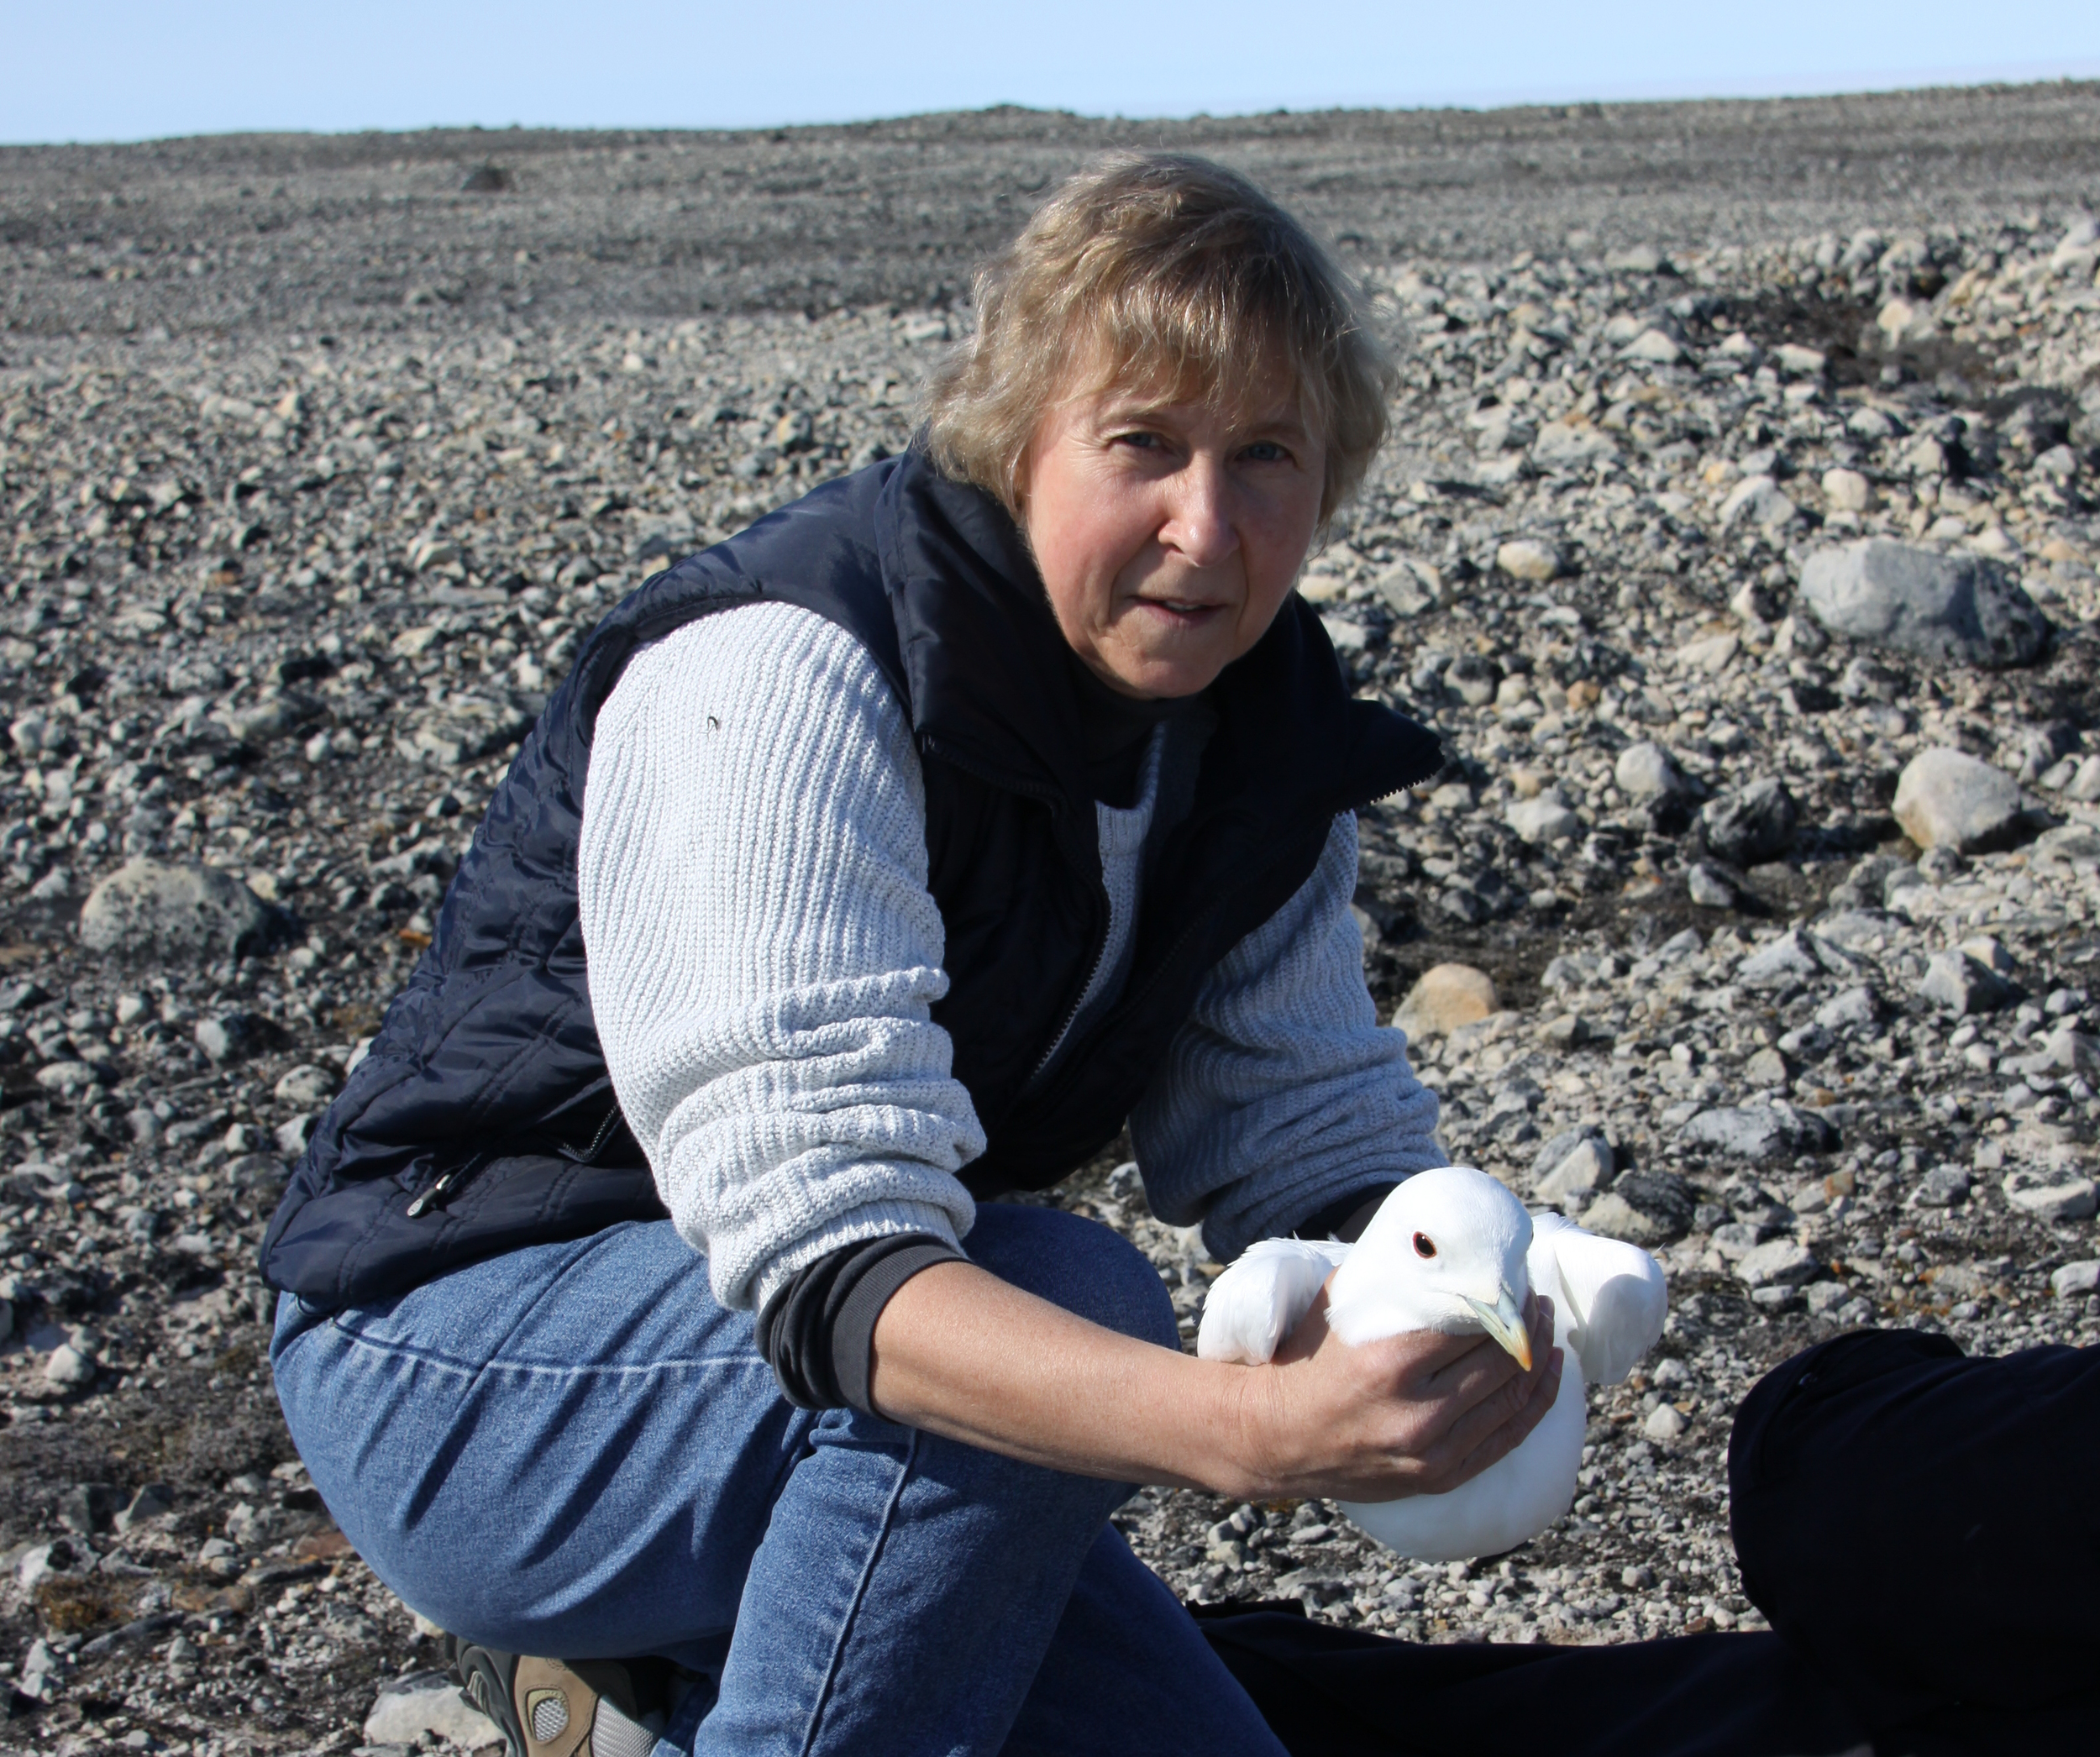 Dr. Birgit Braune is a Research Scientist with Environment Canada whose primary interest is in environmental contaminants in the Arctic marine environment, and how those contaminants may affect seabirds, including High Arctic gulls. She has been involved with ongoing studies of birds at Seymour, Nasaruvaalik, and Prince Leopold Island.